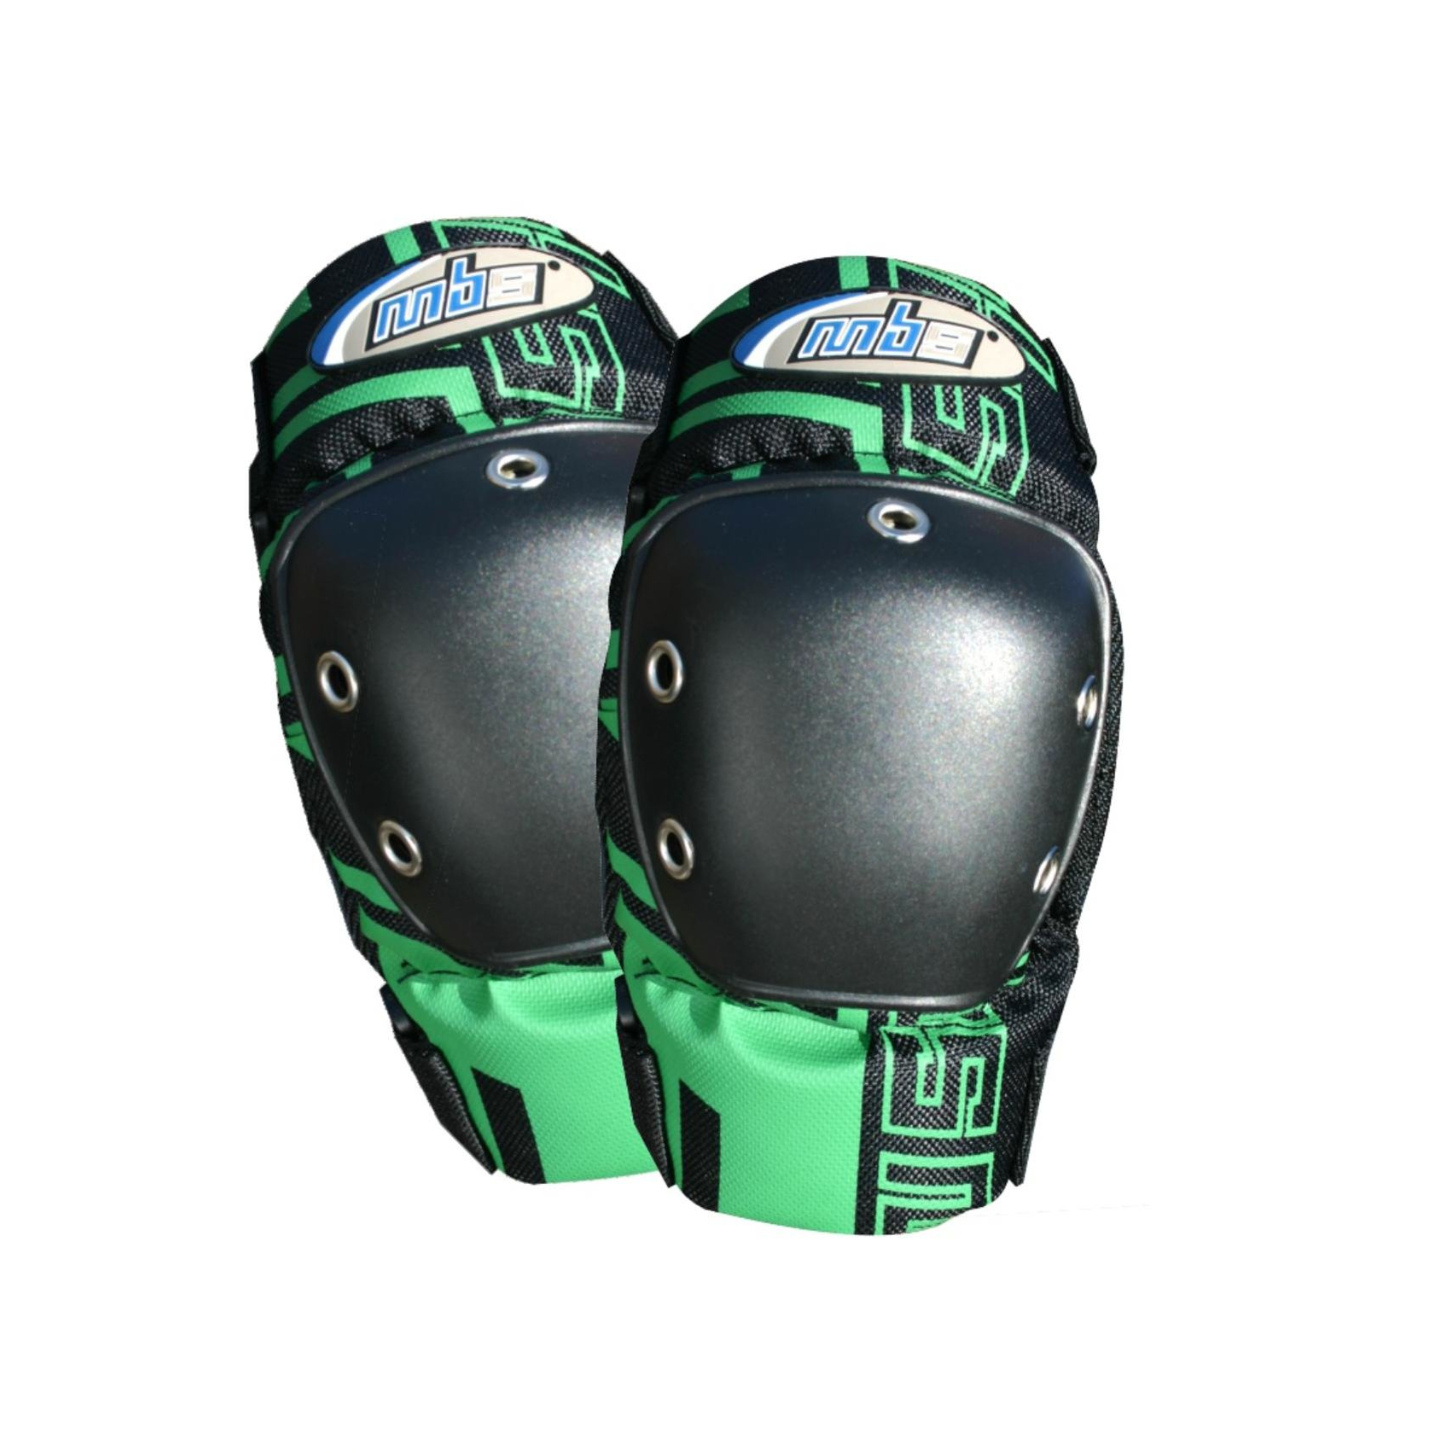 Image of MBS Pro Elbow Pads - 1 Pair - 4 Sizes/Colors